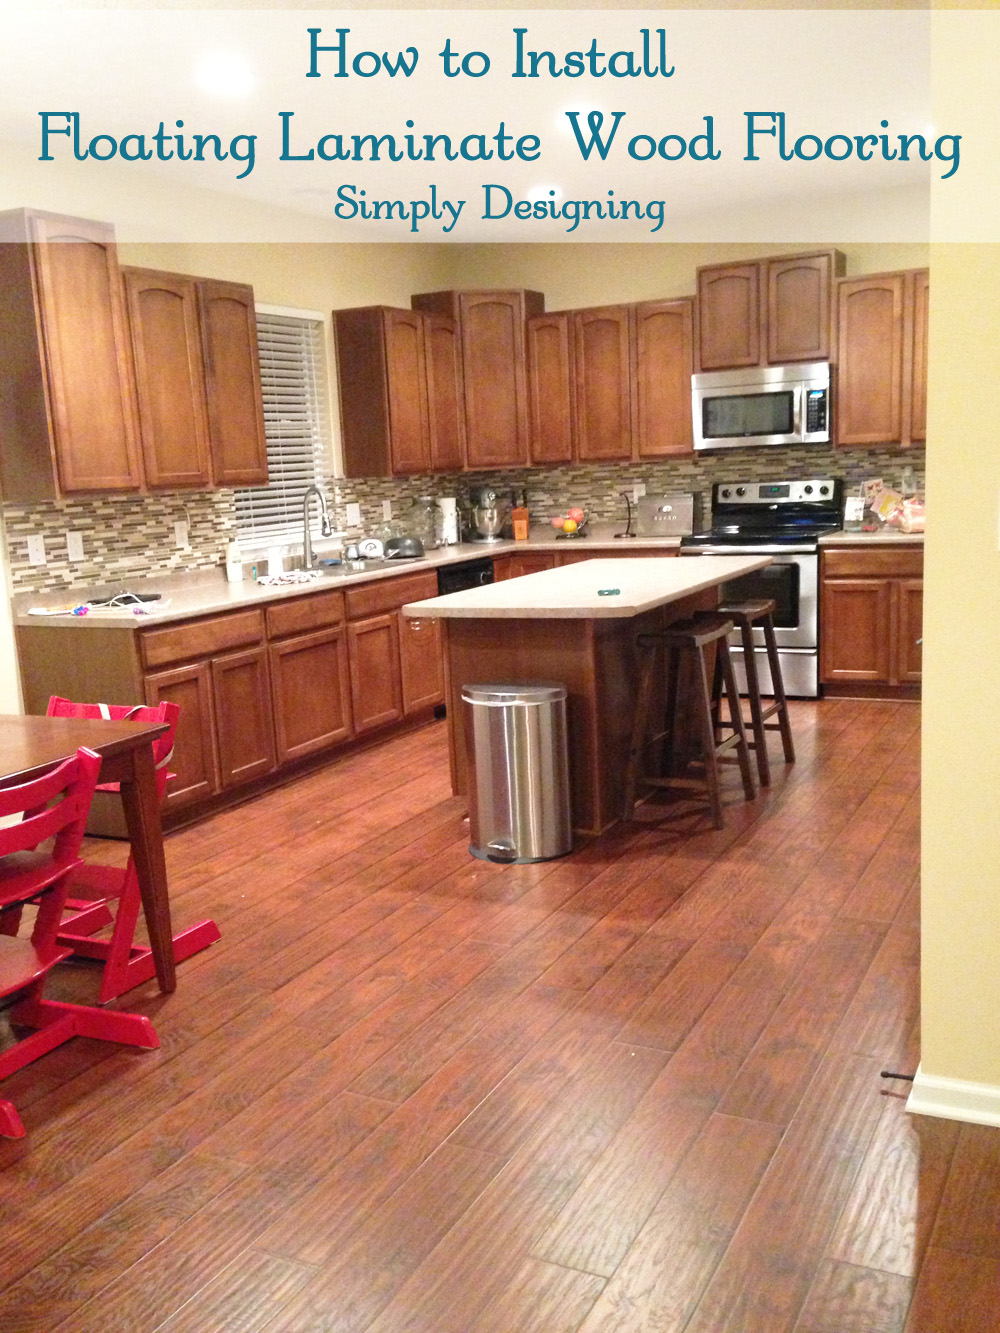 How To Install Floating Wood Laminate Flooring The Preparation